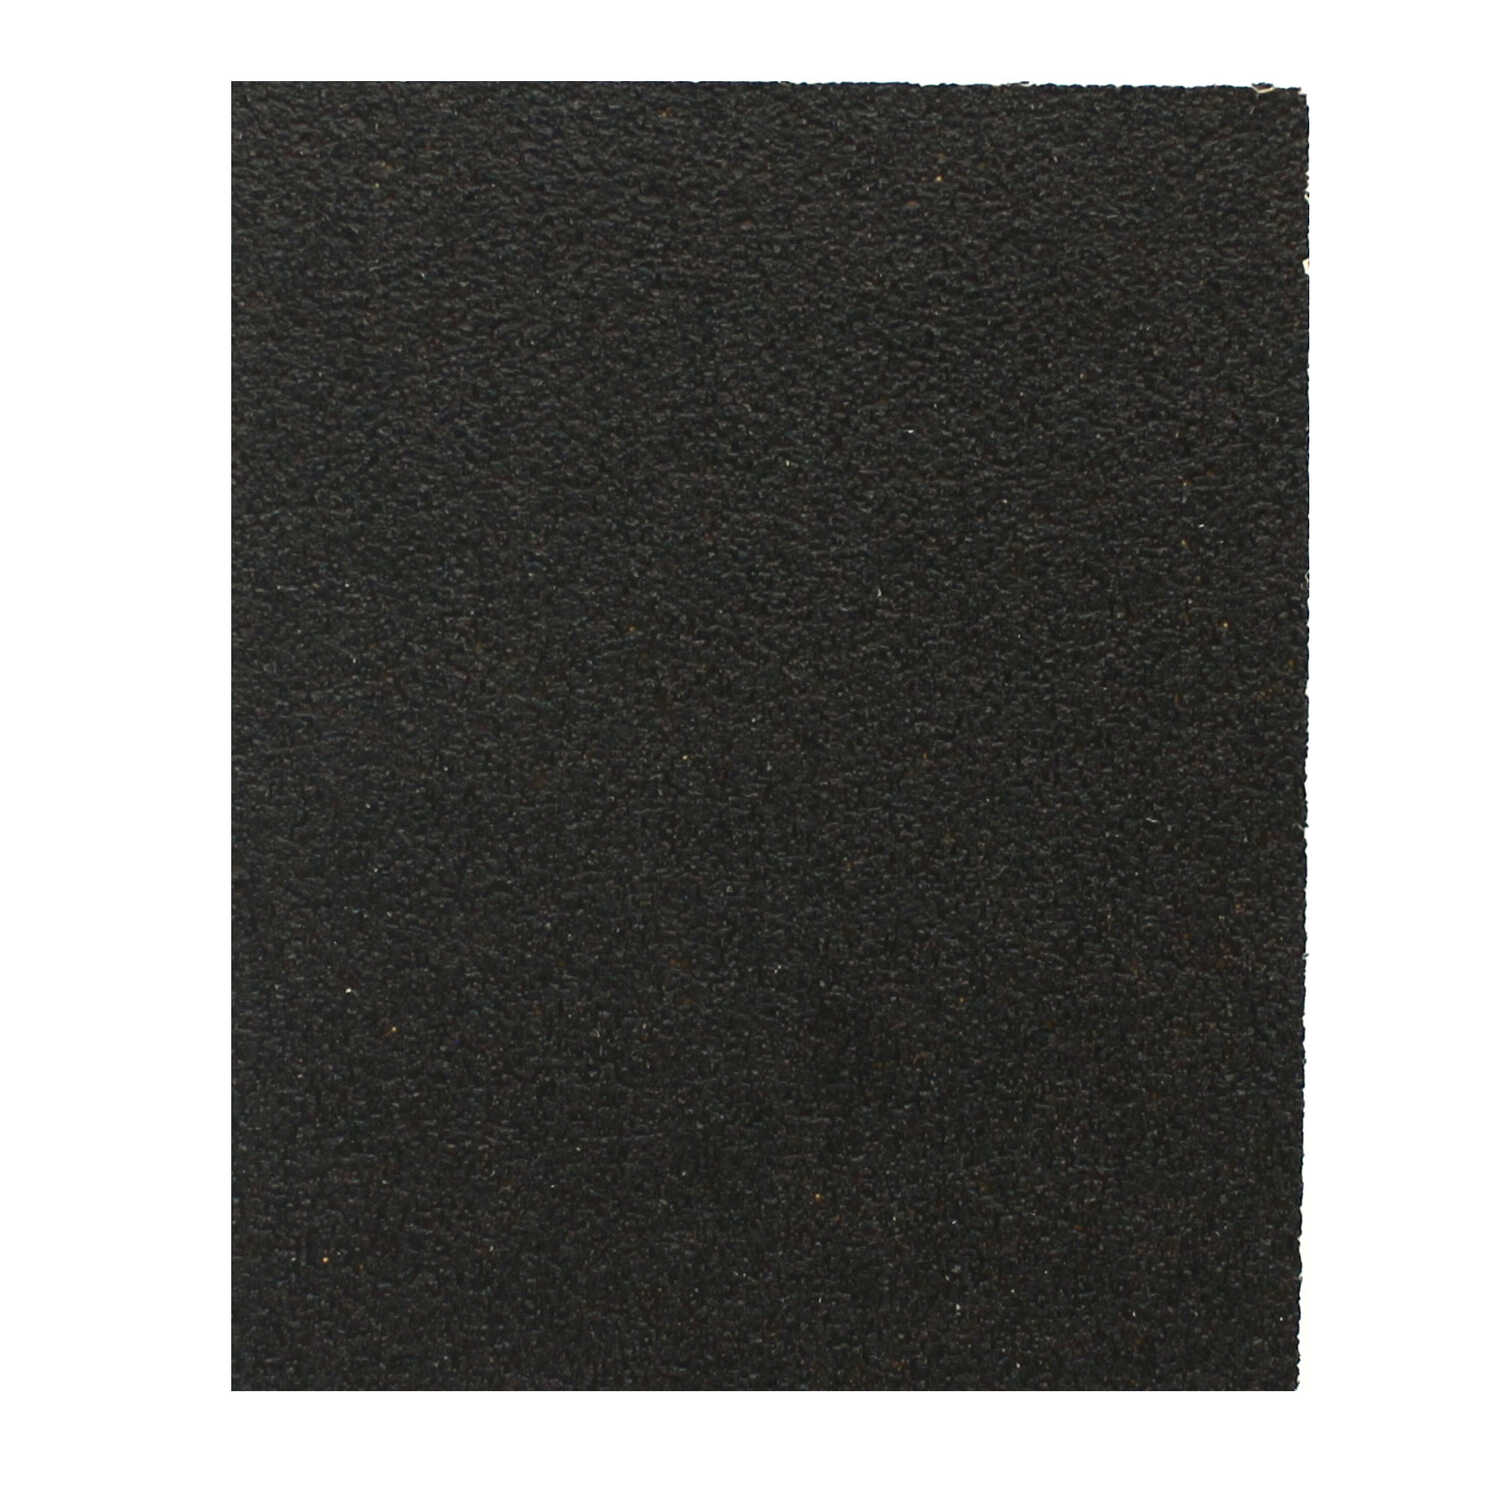 Gator  PowerPlus  5-1/2 in. L x 4-1/2 in. W 50 Grit Coarse  Zirconium Oxide  1/4 Sheet Sandpaper  4